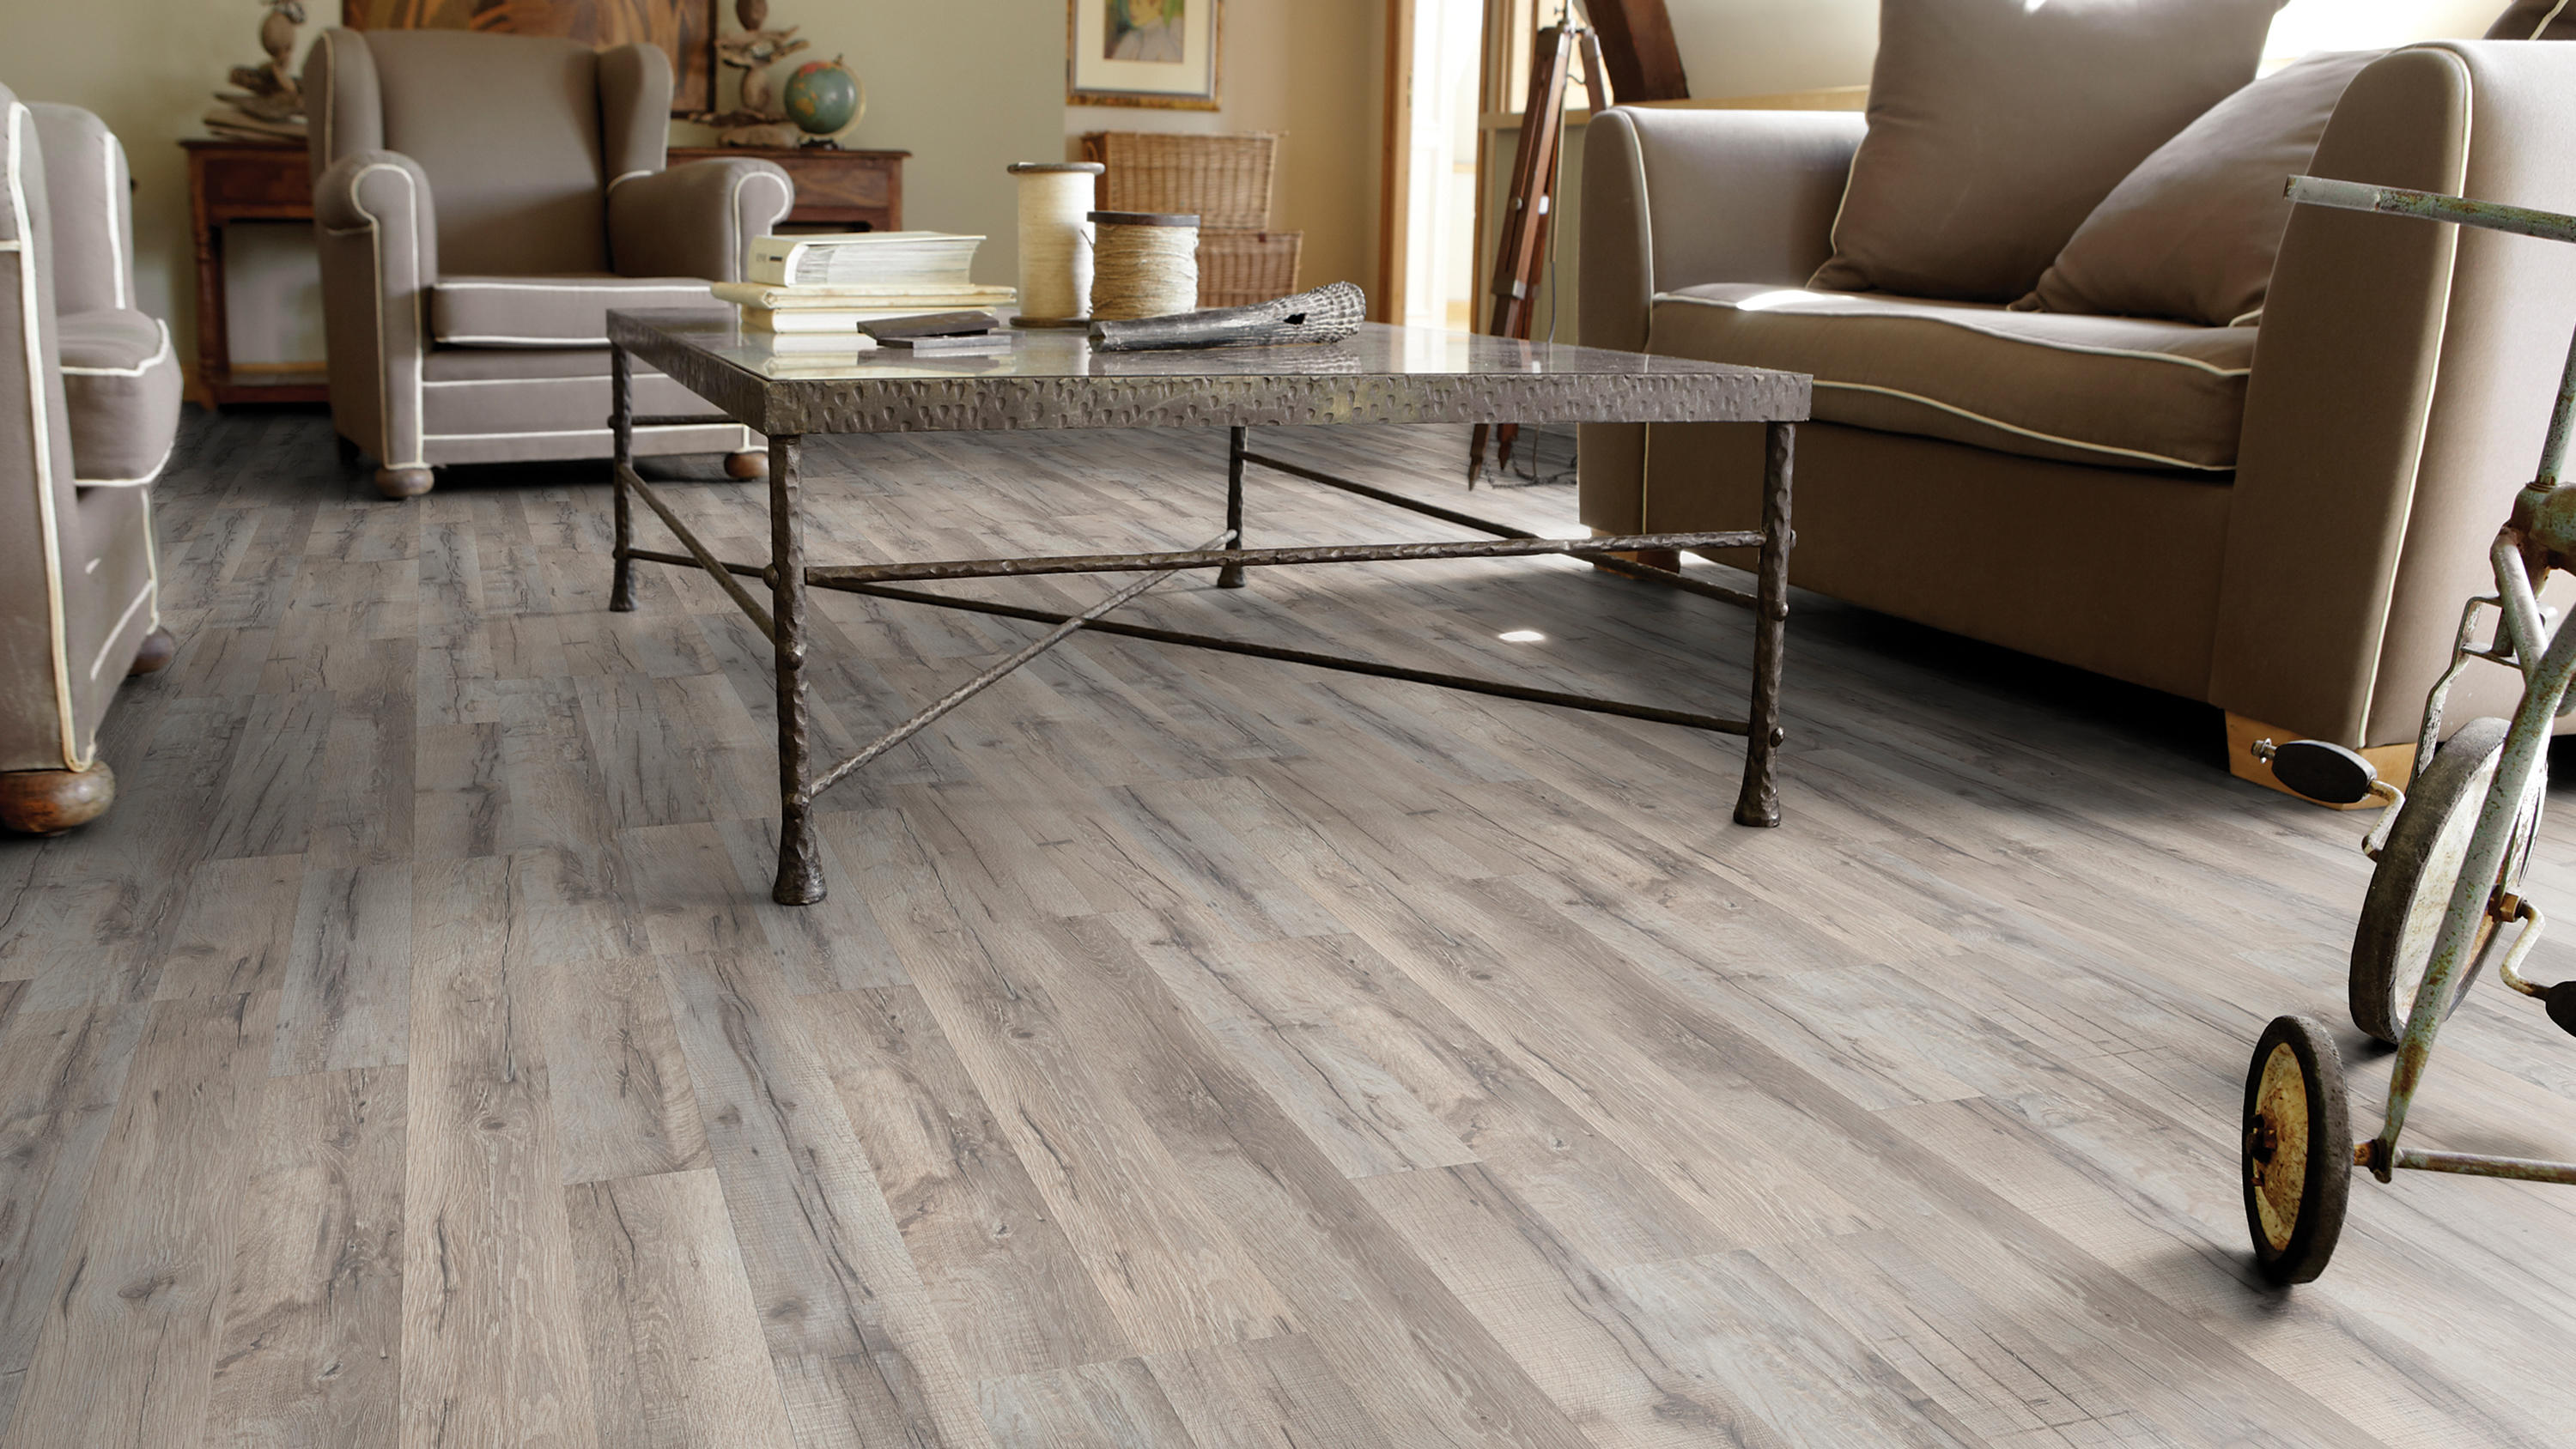 AquaFlor - A Menards' Exclusive Laminate - Tarkett